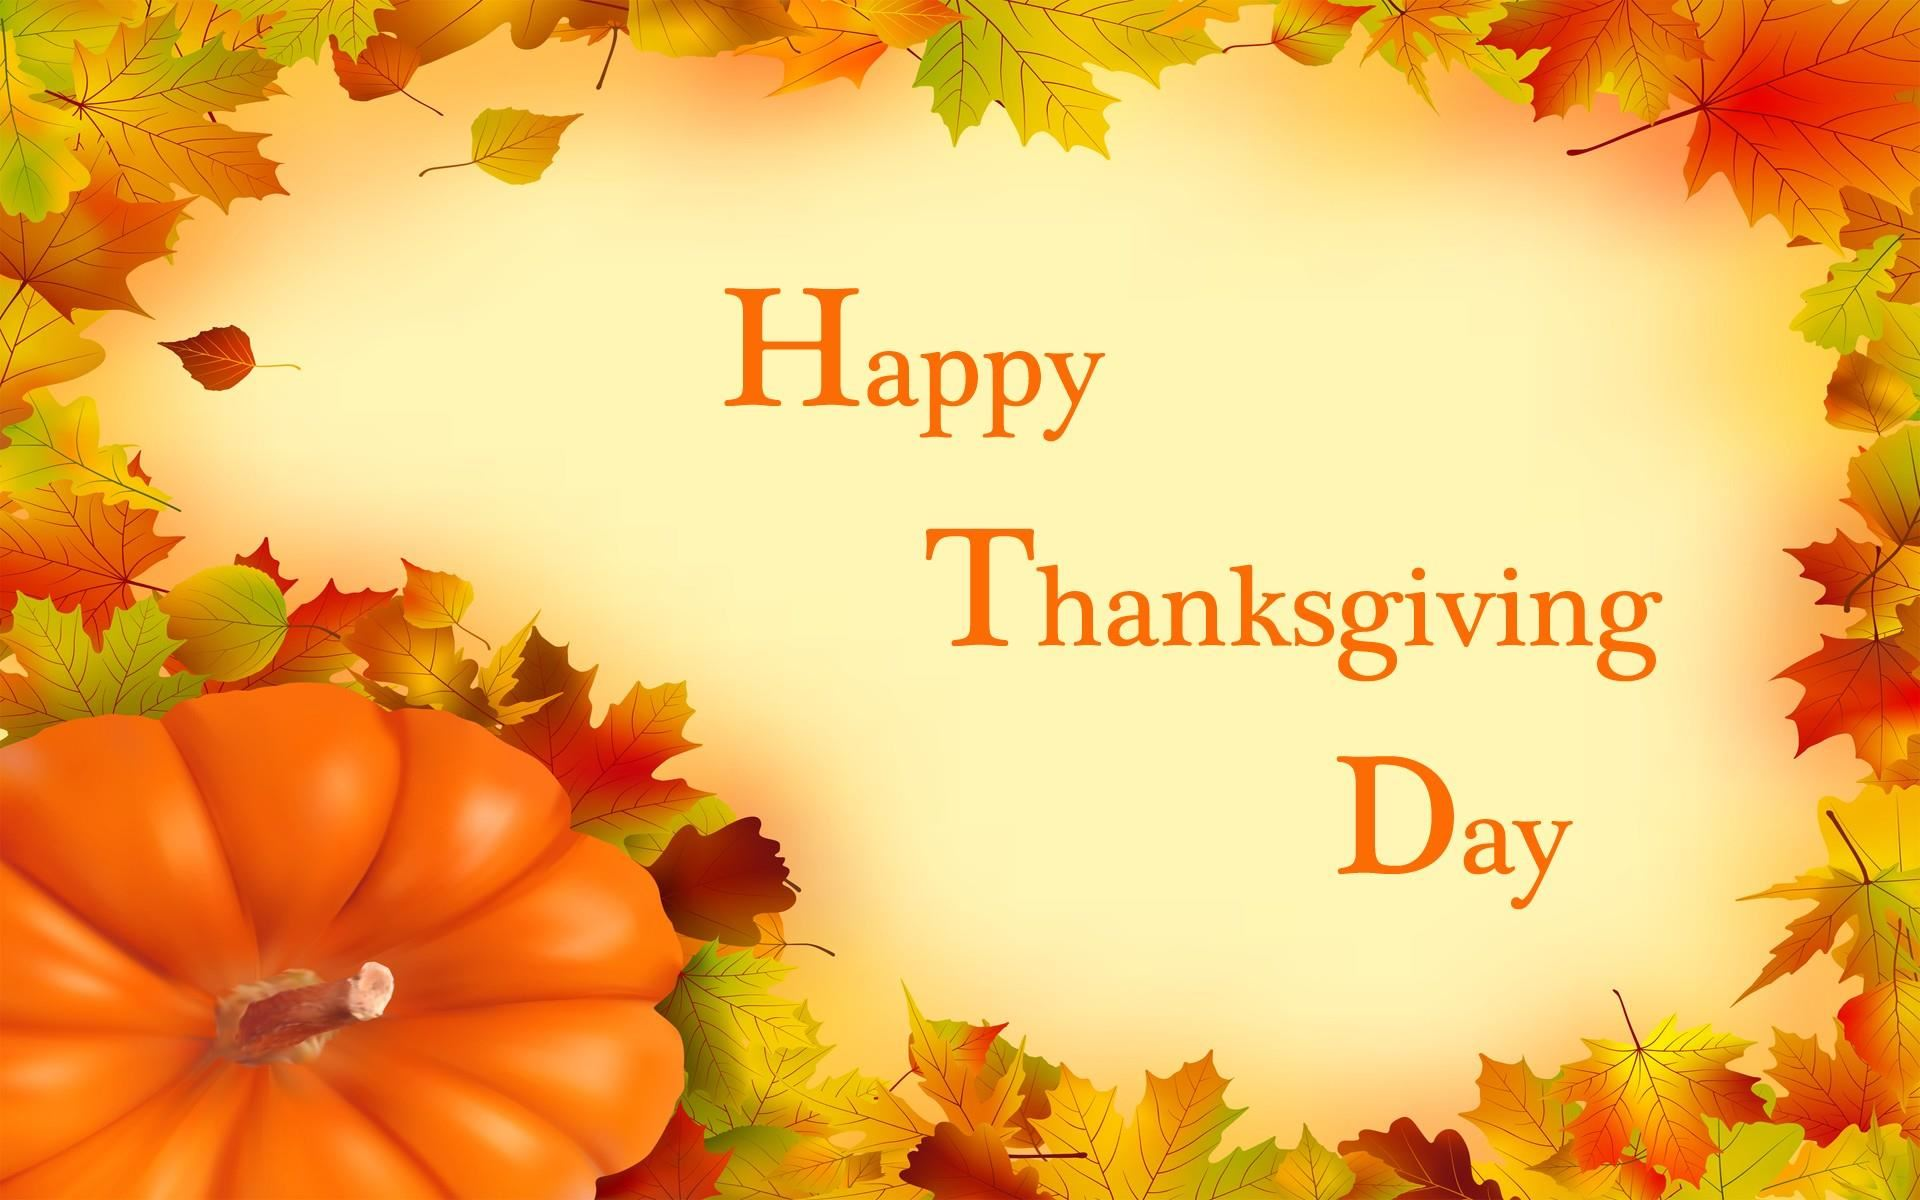 Happy Thanksgiving Wishes Rich Image And Wallpaper